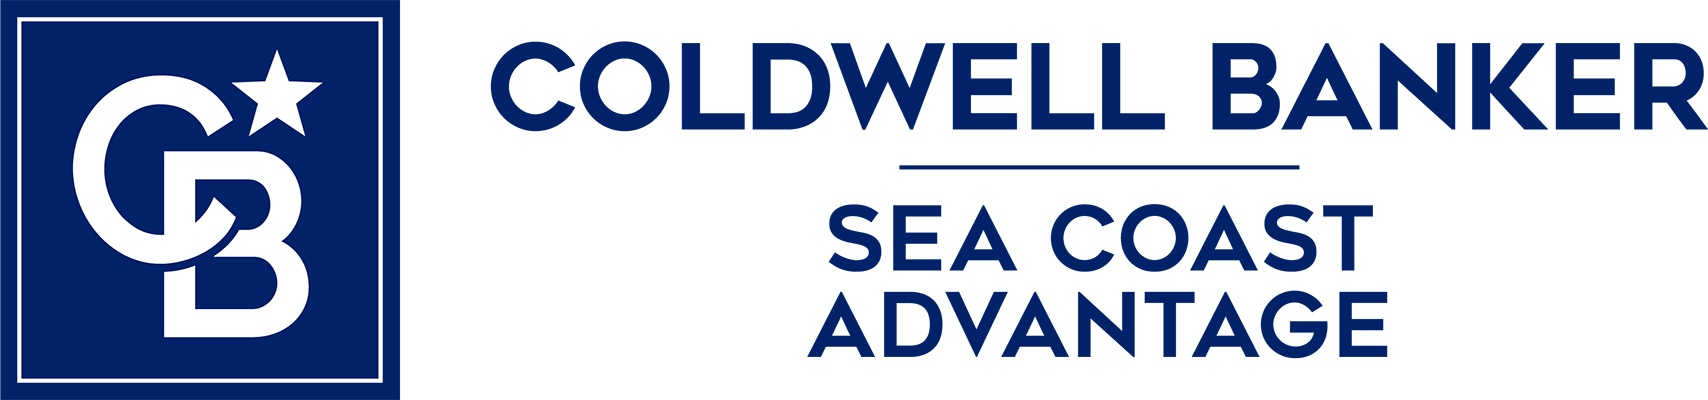 Betty Thompson - Coldwell Banker Sea Coast Advantage Realty